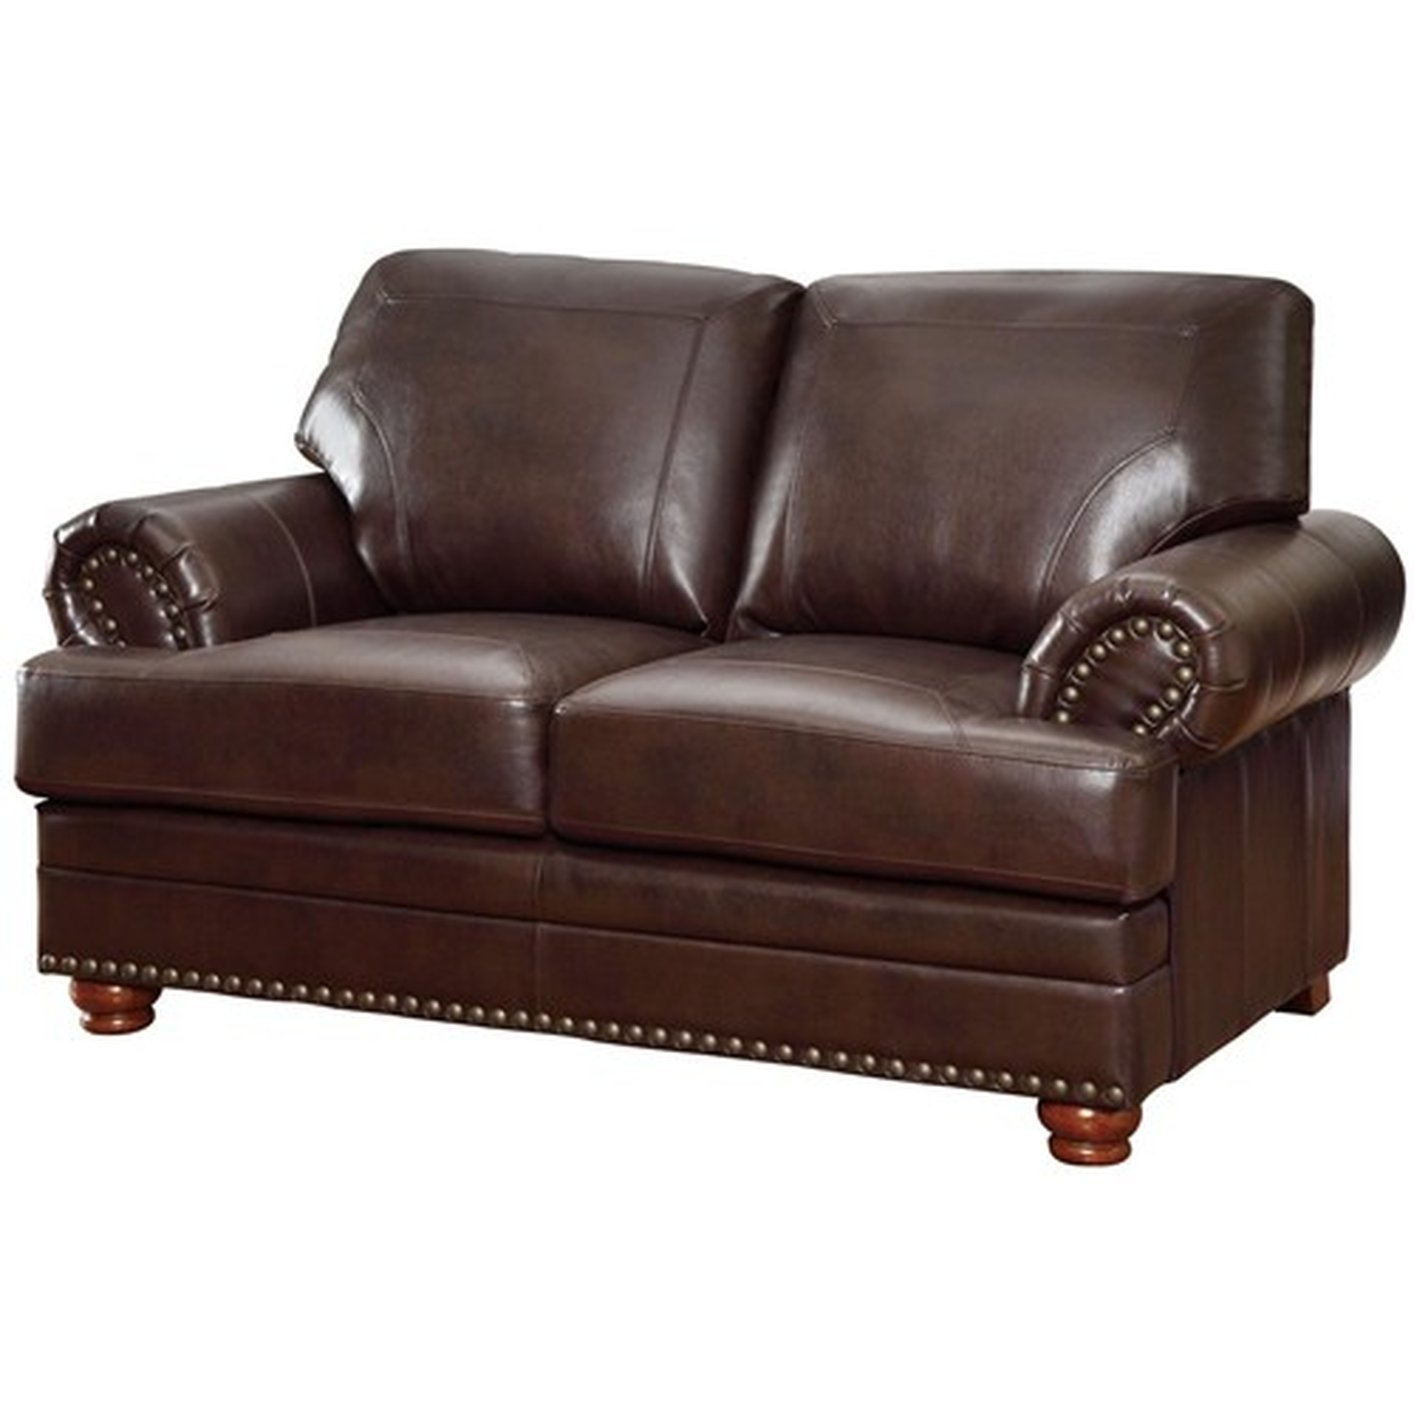 Coaster Colton 504412 Brown Leather Loveseat